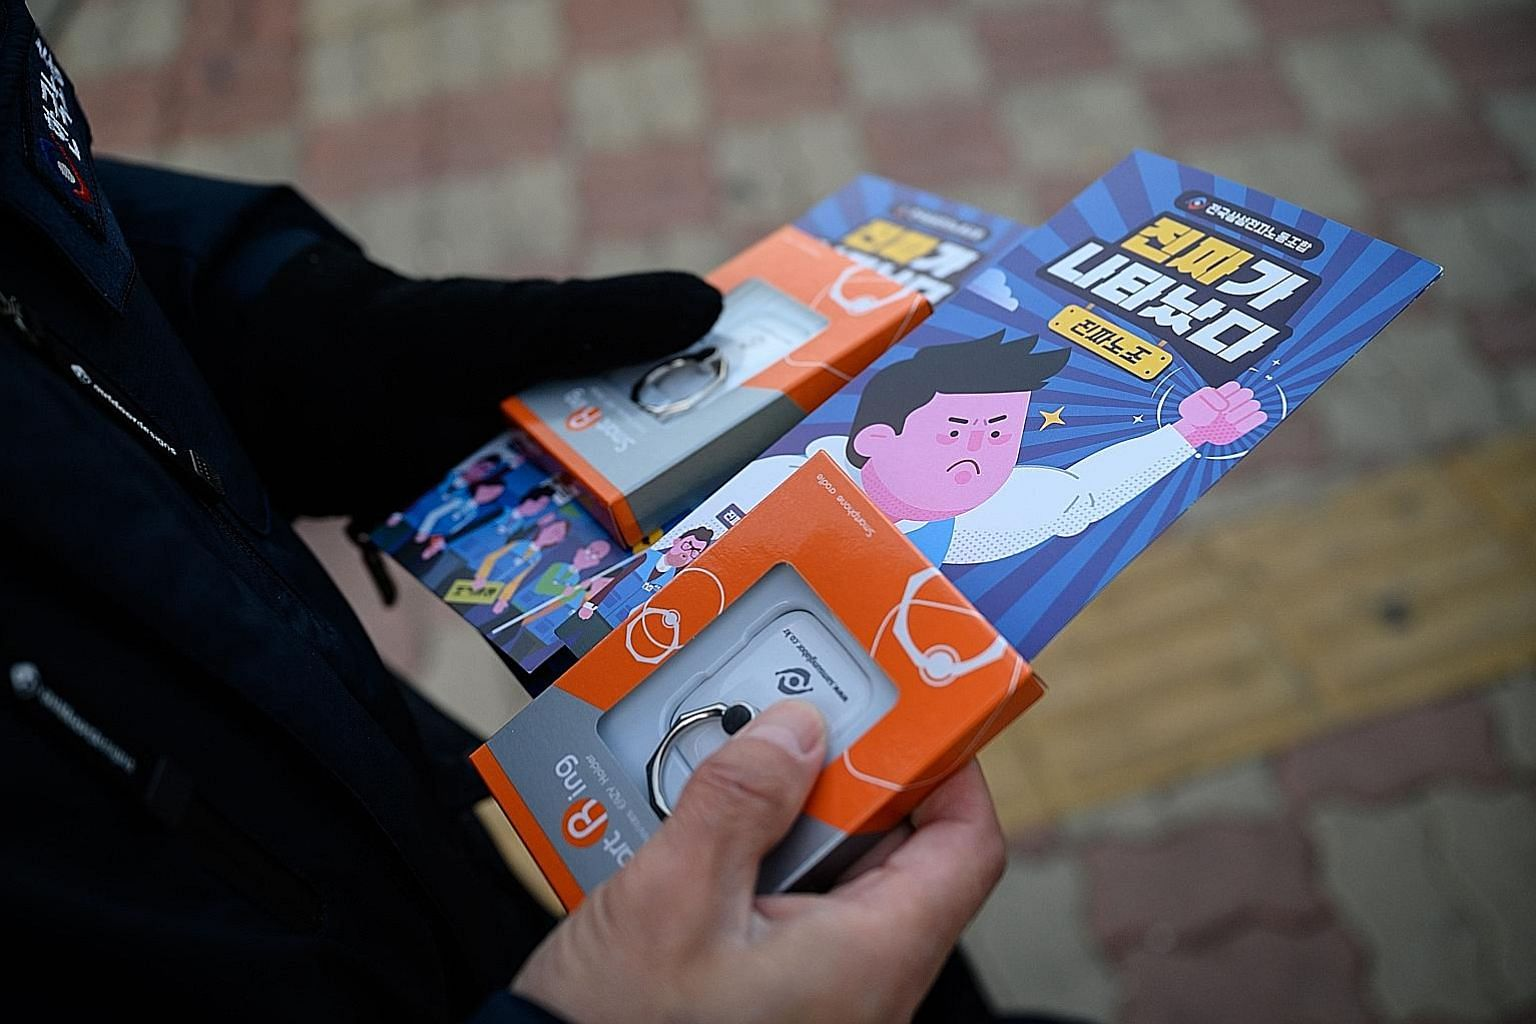 A Samsung Electronics worker holding trade union membership recruitment leaflets. For almost 50 years, the flagship subsidiary of the giant Samsung Group has avoided unionisation of its employees.